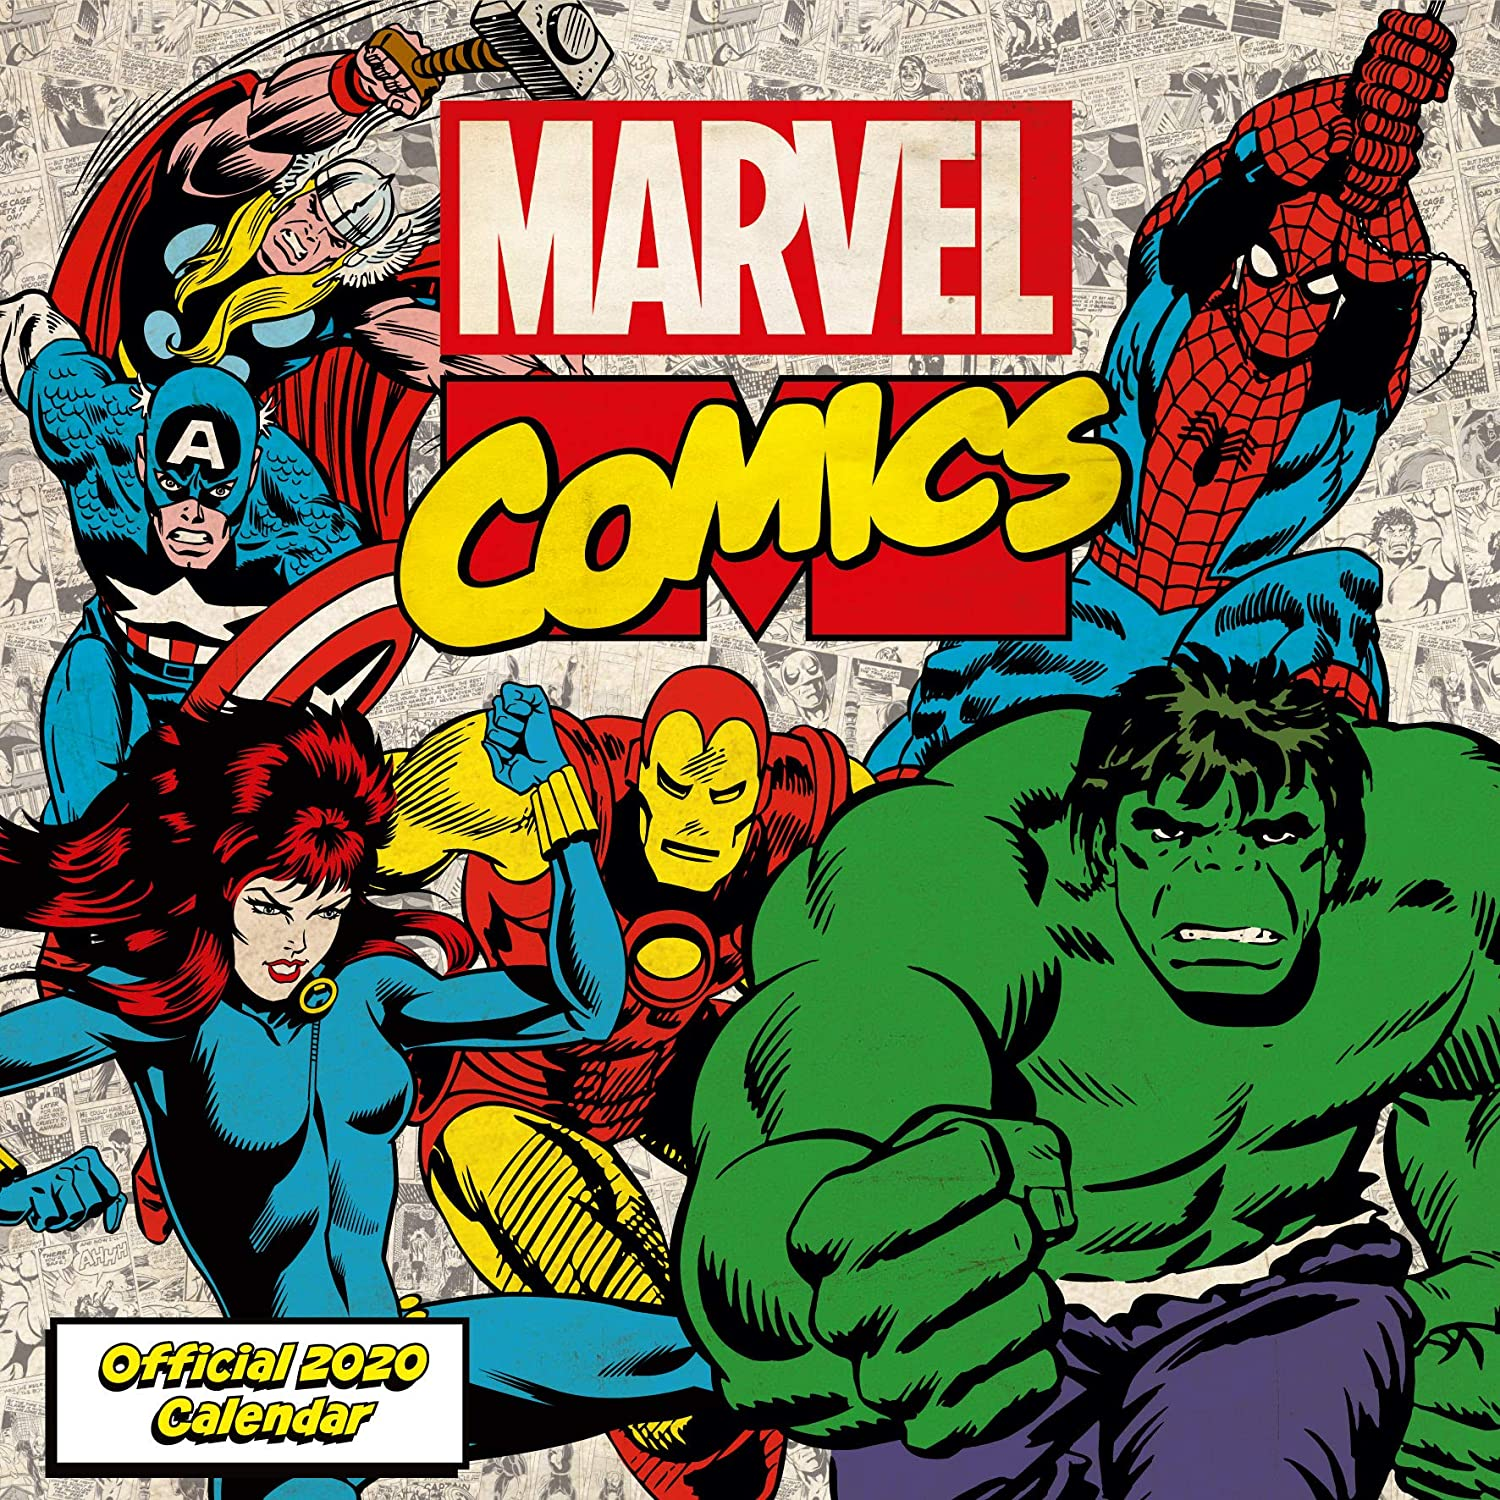 Marvel Comics 2020 Calendar - Official Square Wall Format Calendar